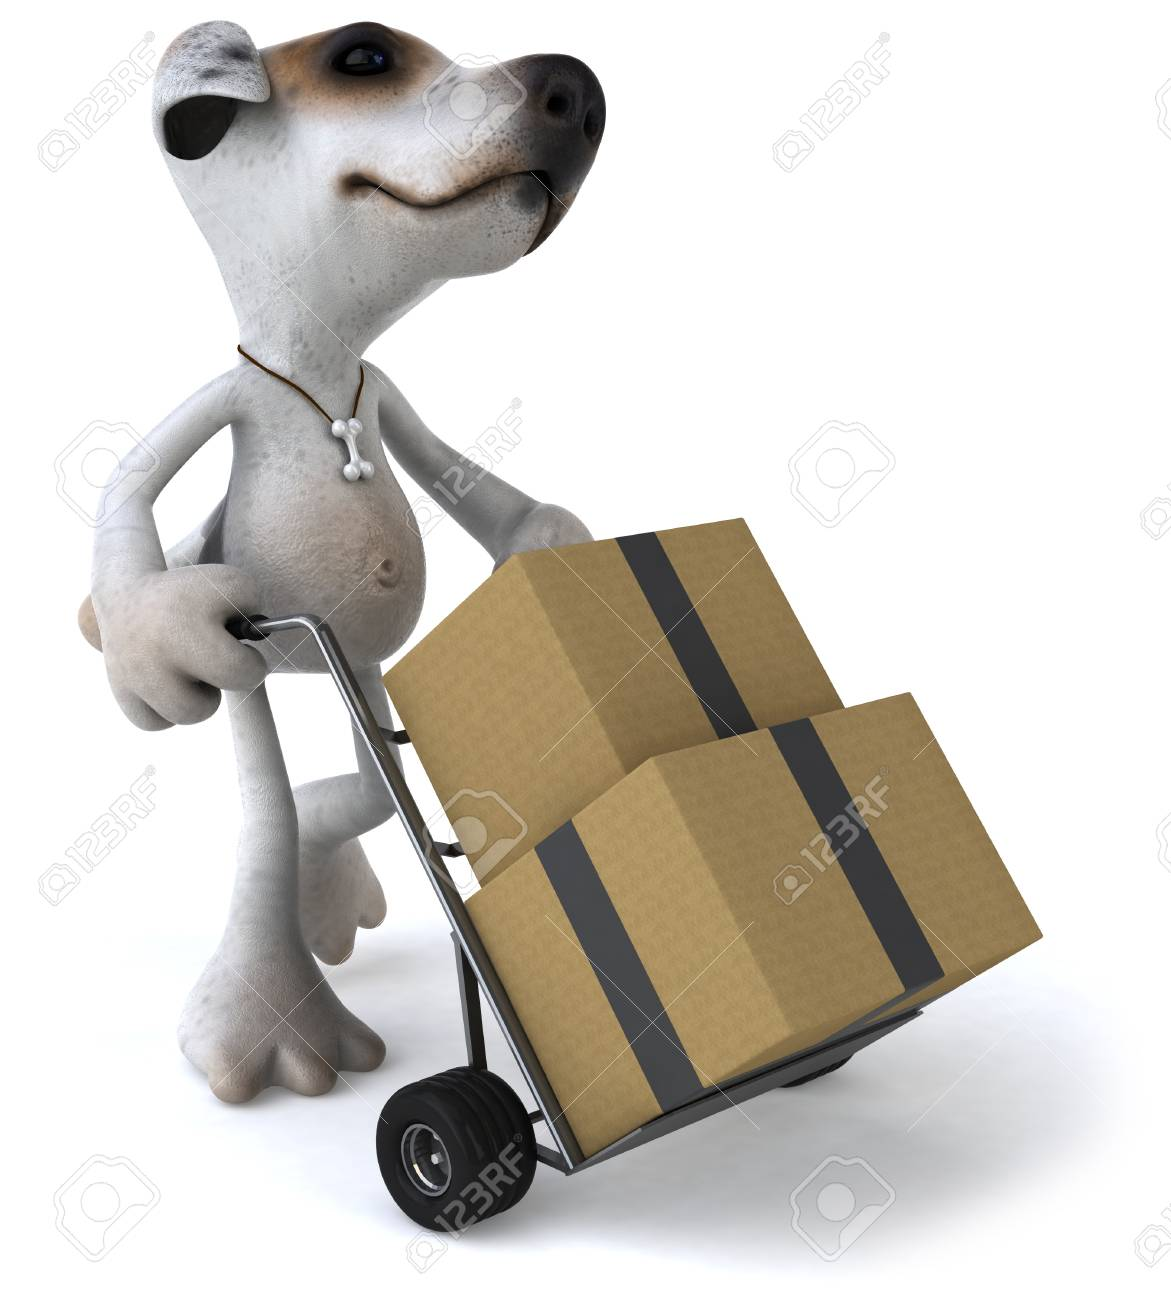 Cartoon dog pushing trolley with boxes